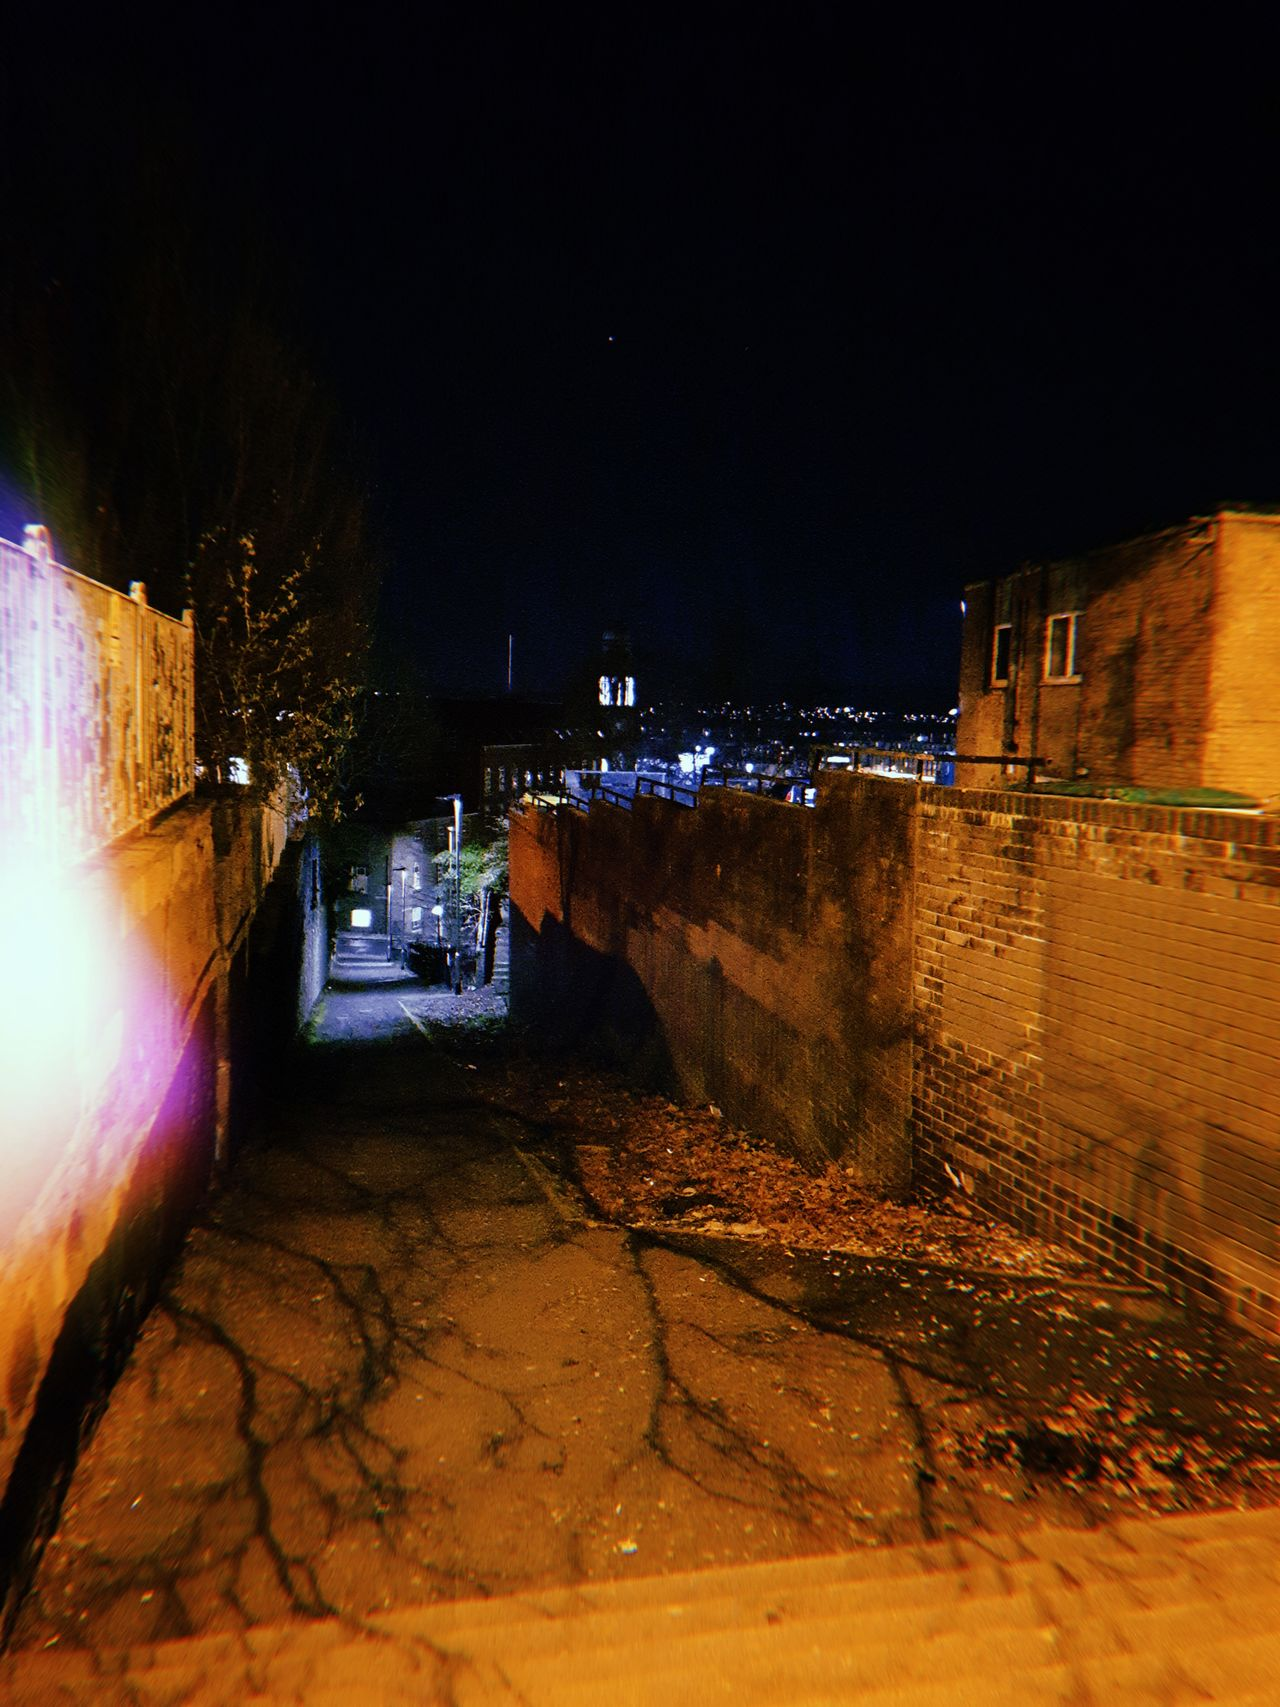 A dark alleyway in Dundee at night. The streetlight lights up part of it with the rest in darkness.